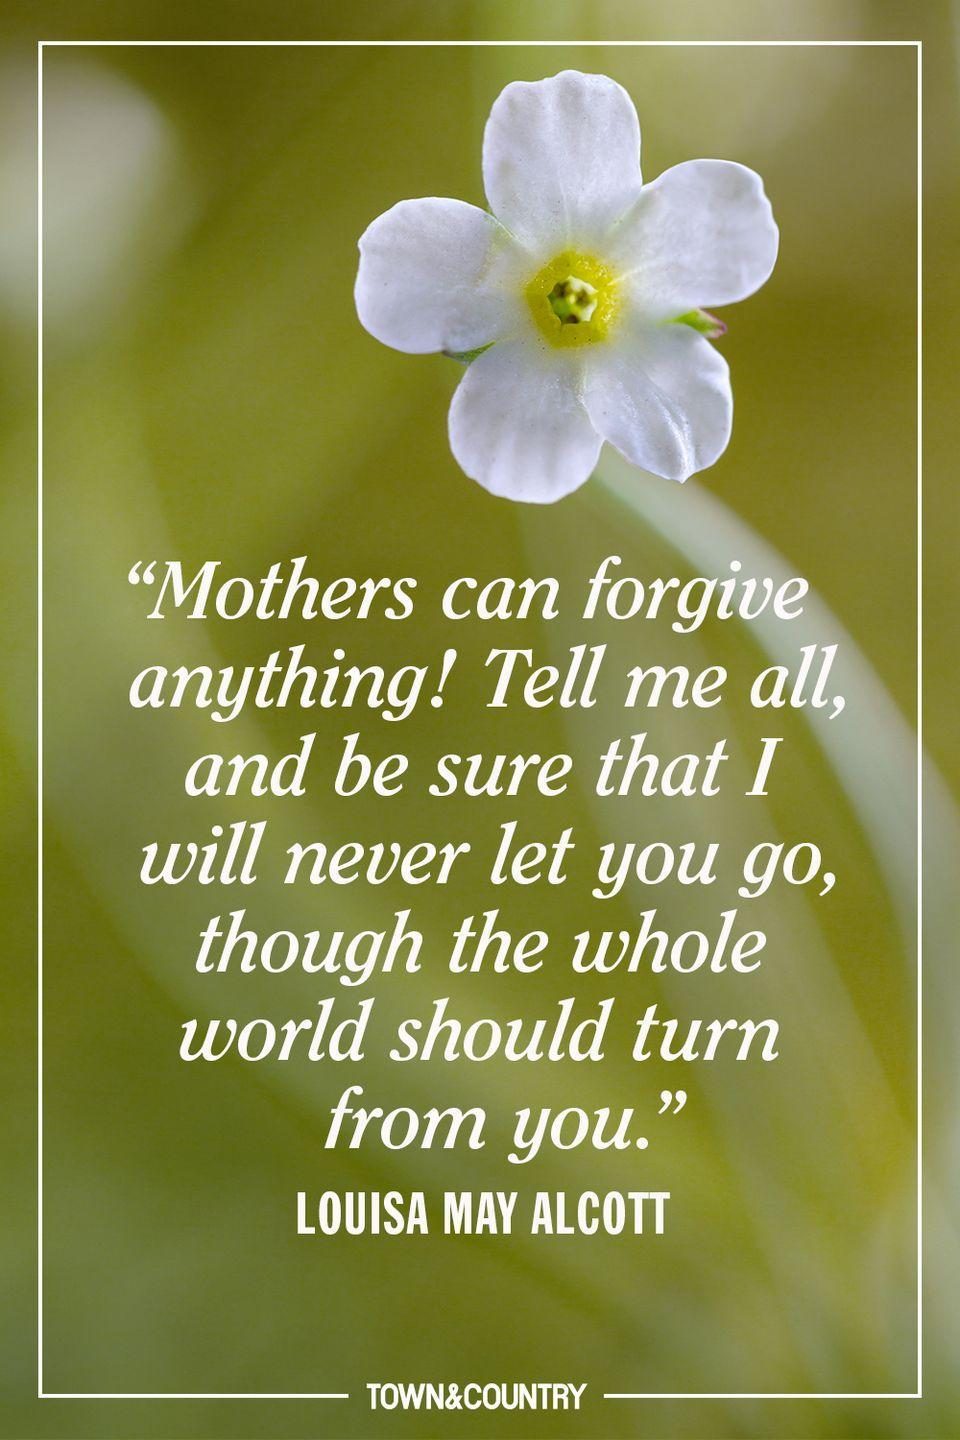 """<p>""""Mothers can forgive anything! Tell me all, and be sure that I will never let you go, though the whole world should turn from you.""""</p><p>- Louisa May Alcott</p>"""